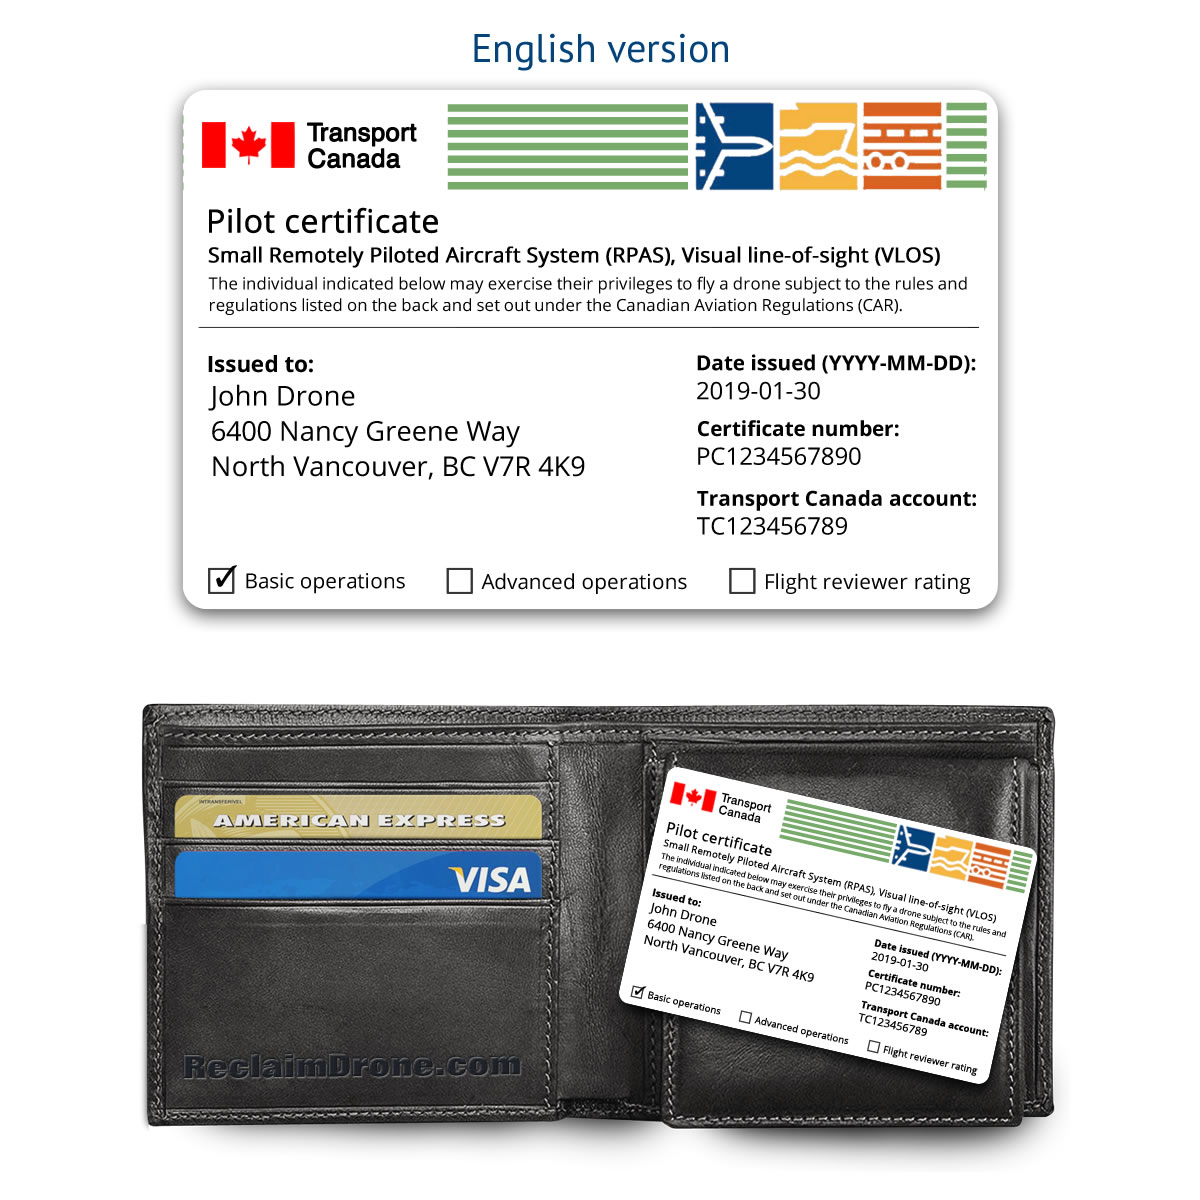 Transport Canada drone pilot certificate ID card – English version